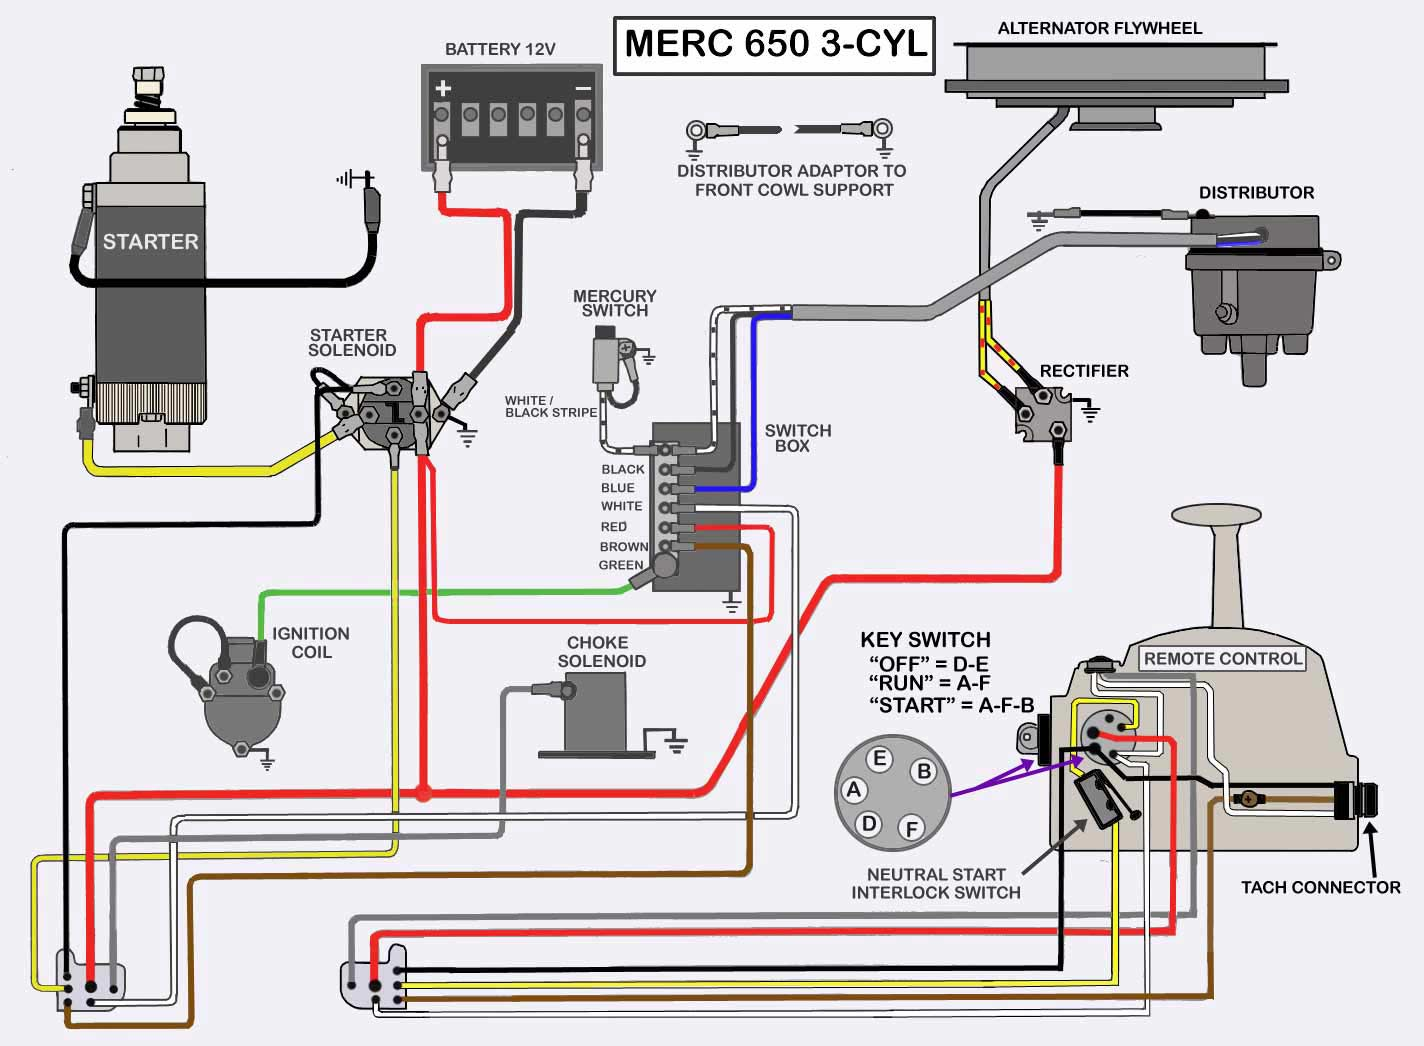 controll box wiring diagram johnson outboard wiring diagram Johnson Outboard Key Switch boat control box diagram wiring diagrammercury outboard control wiring diagram 13 8 tierarztpraxis ruffy de \\